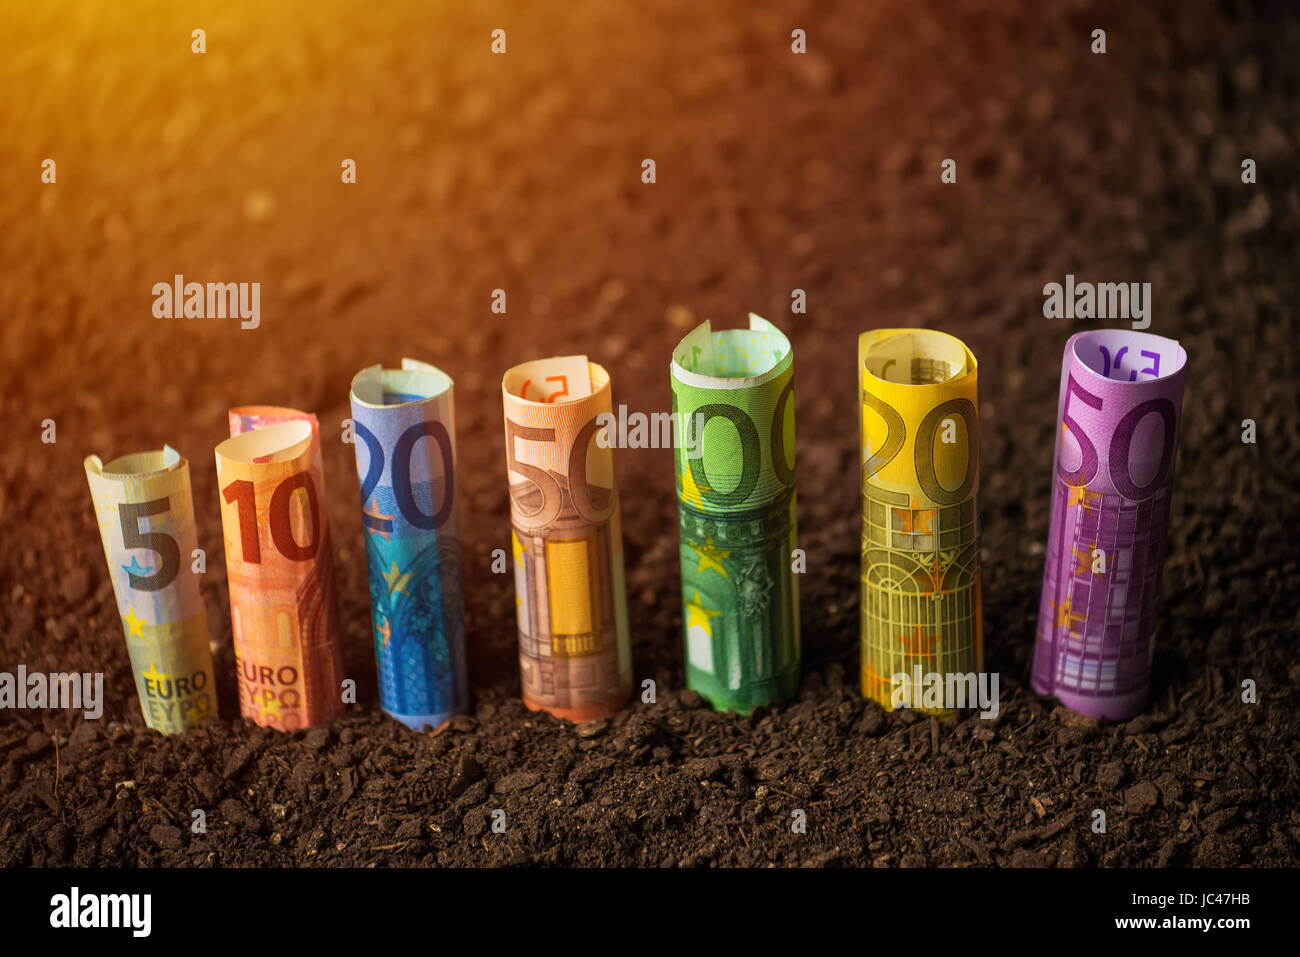 Euro funds for agriculture, financing of agricultural expenditure Stock Photo